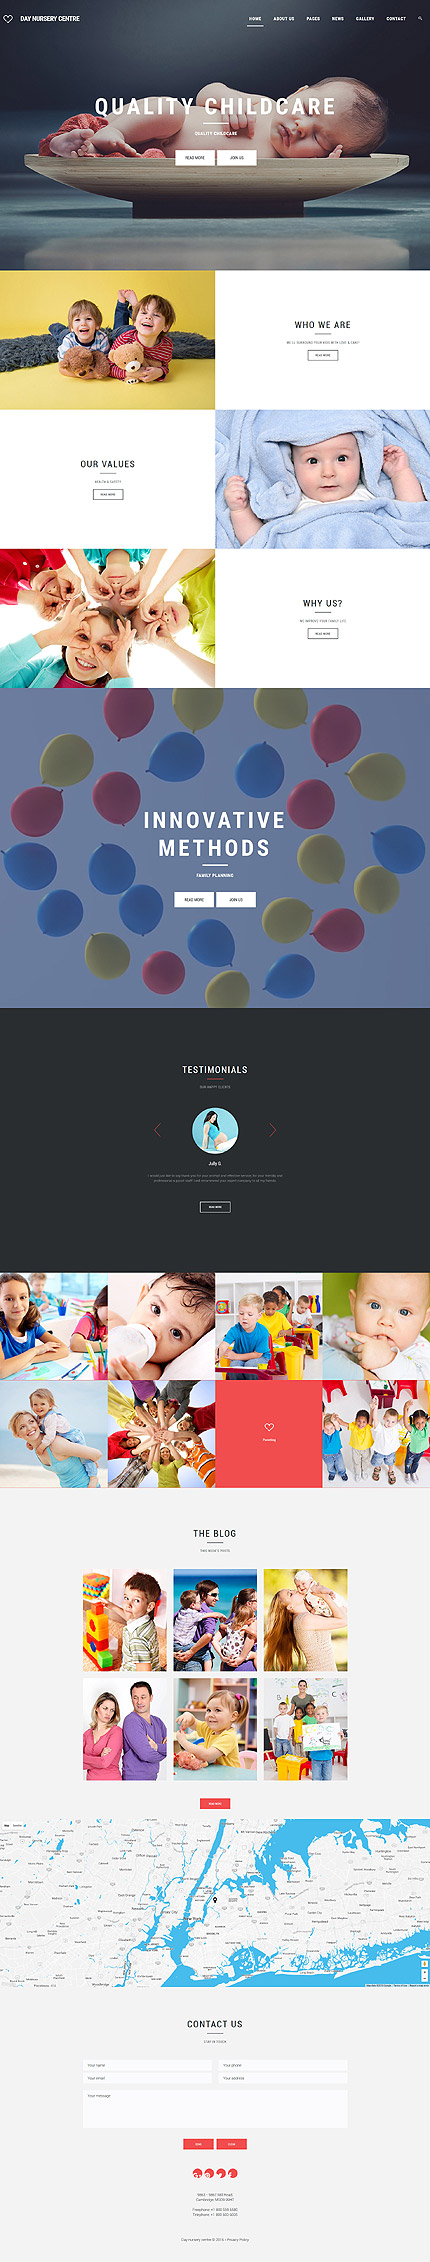 Joomla Theme/Template 61254 Main Page Screenshot